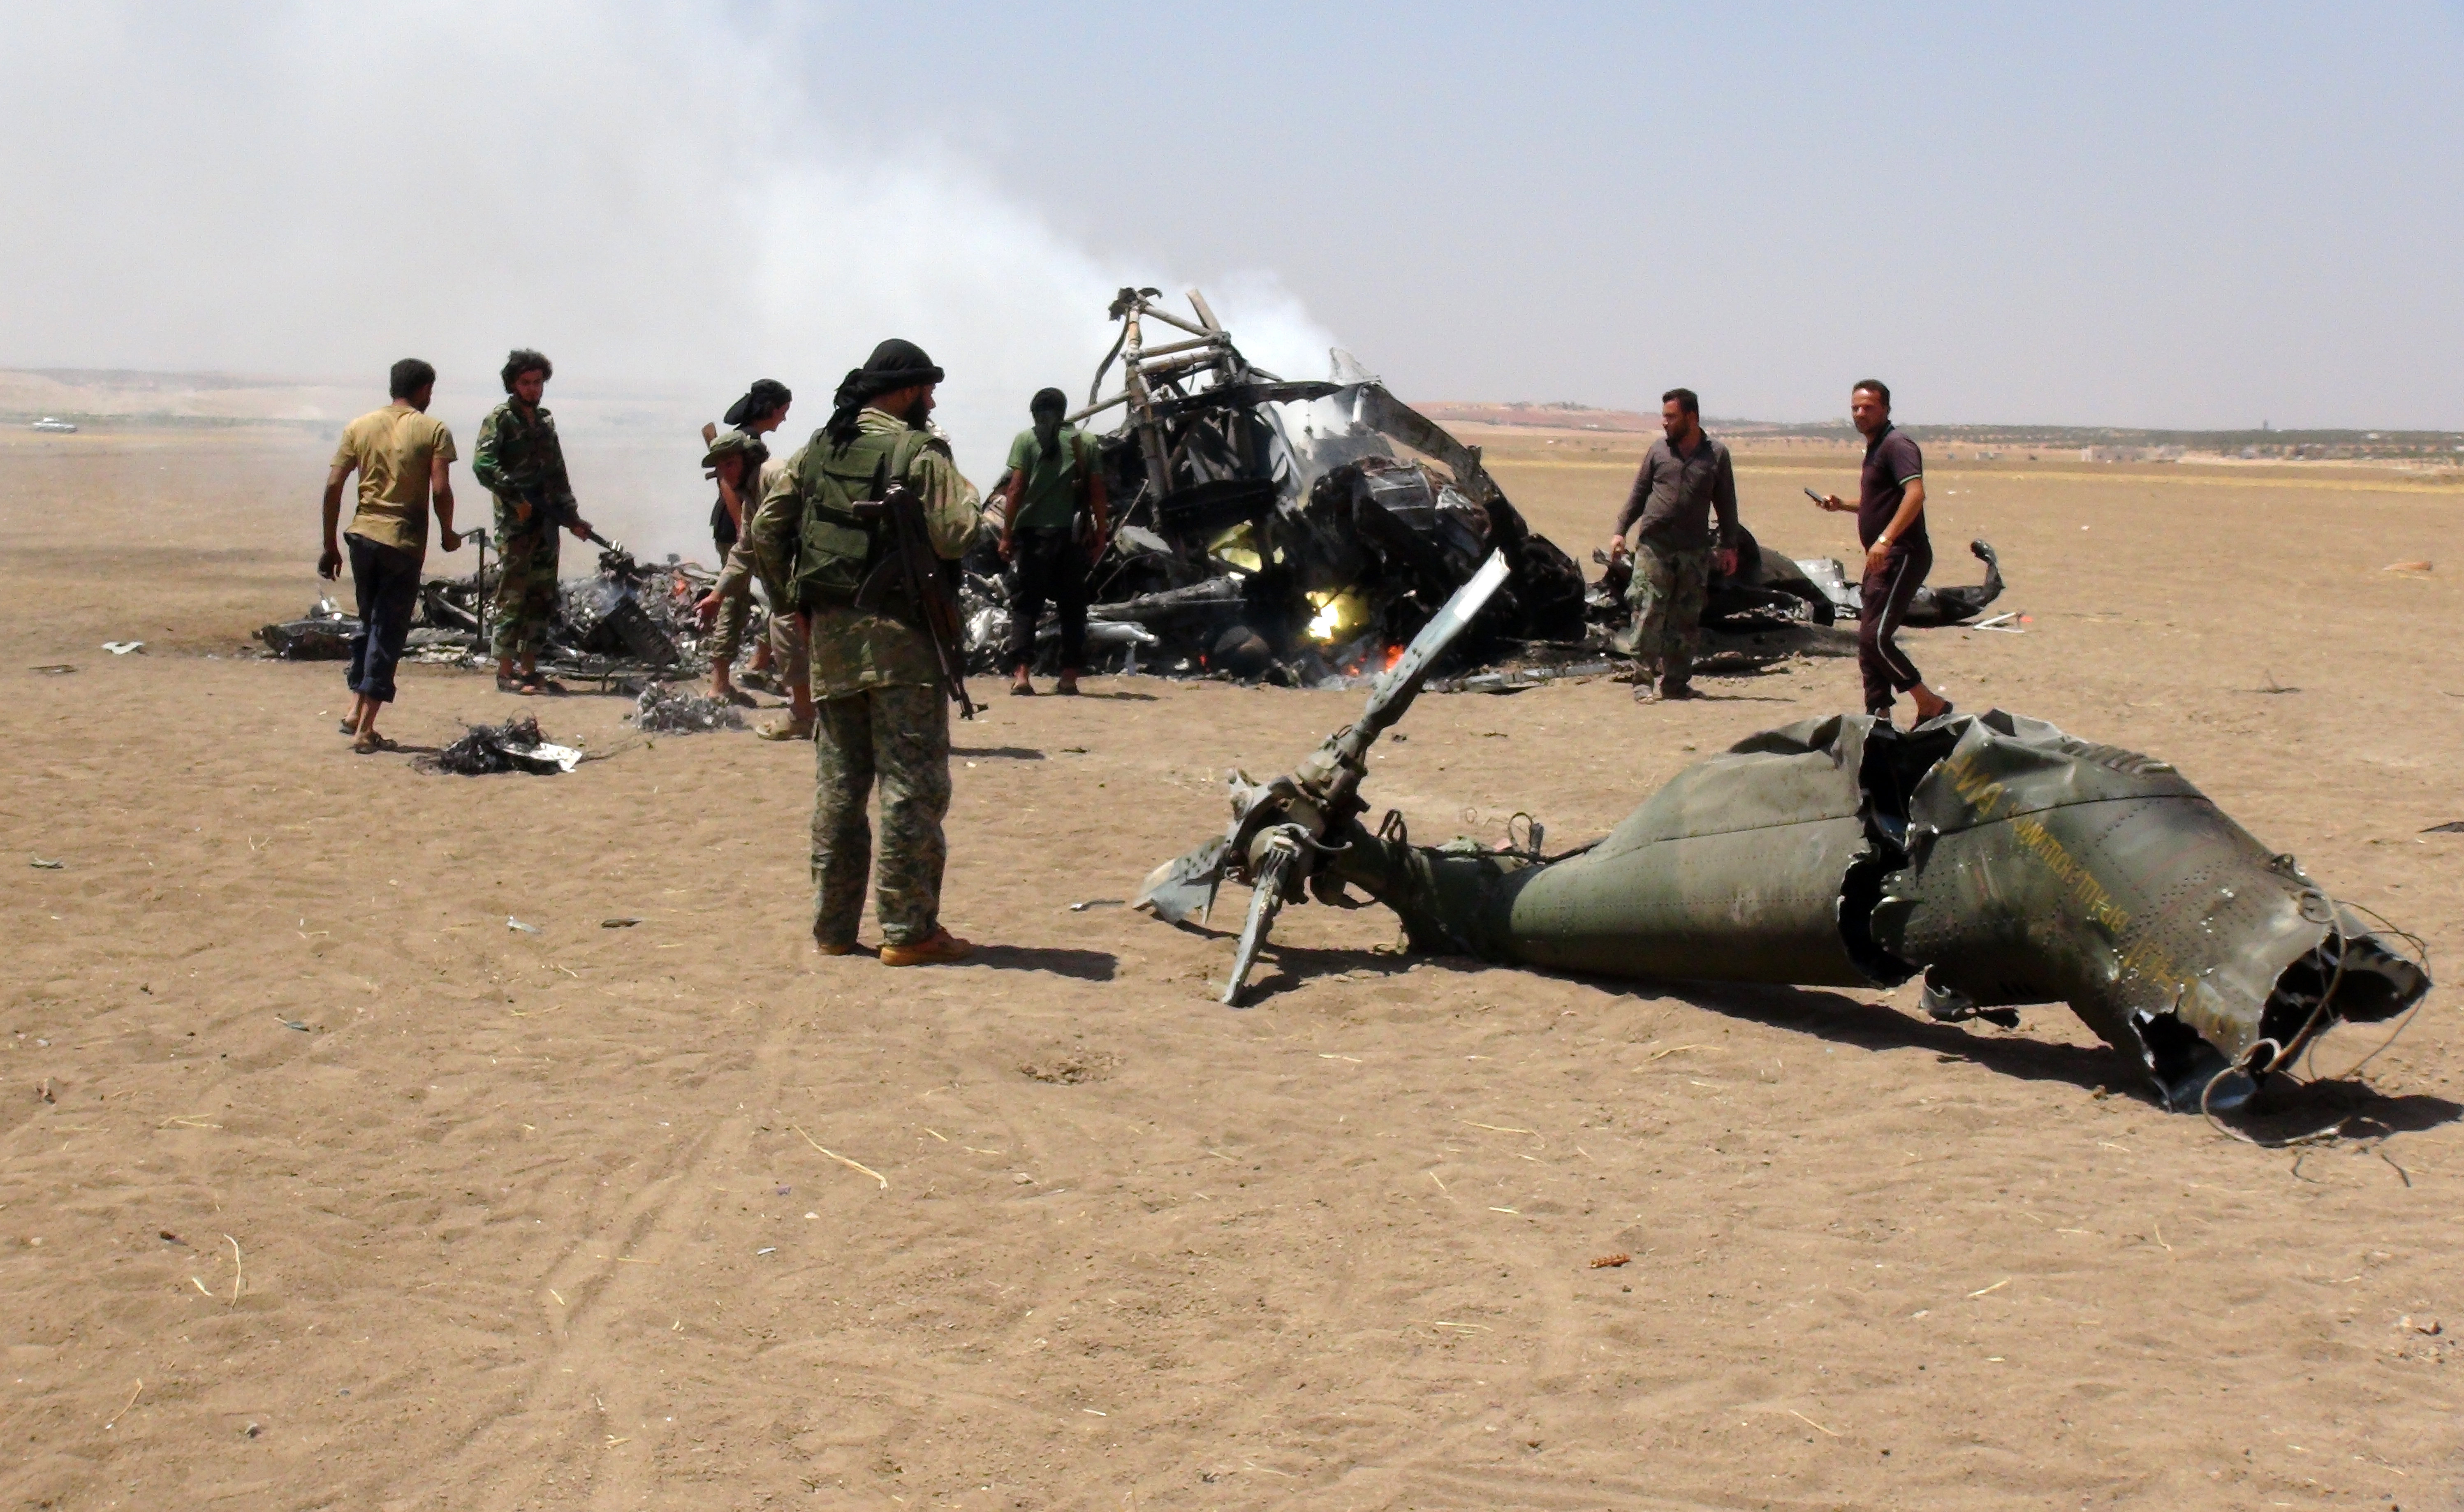 A picture taken on August 1, 2016 shows Syrian rebels gathering around the wreckage of a Russian Mi-8 military transport helicopter after it was shot down along the administrative border between Idlib province, northwestern Syria and neighbouring Aleppo